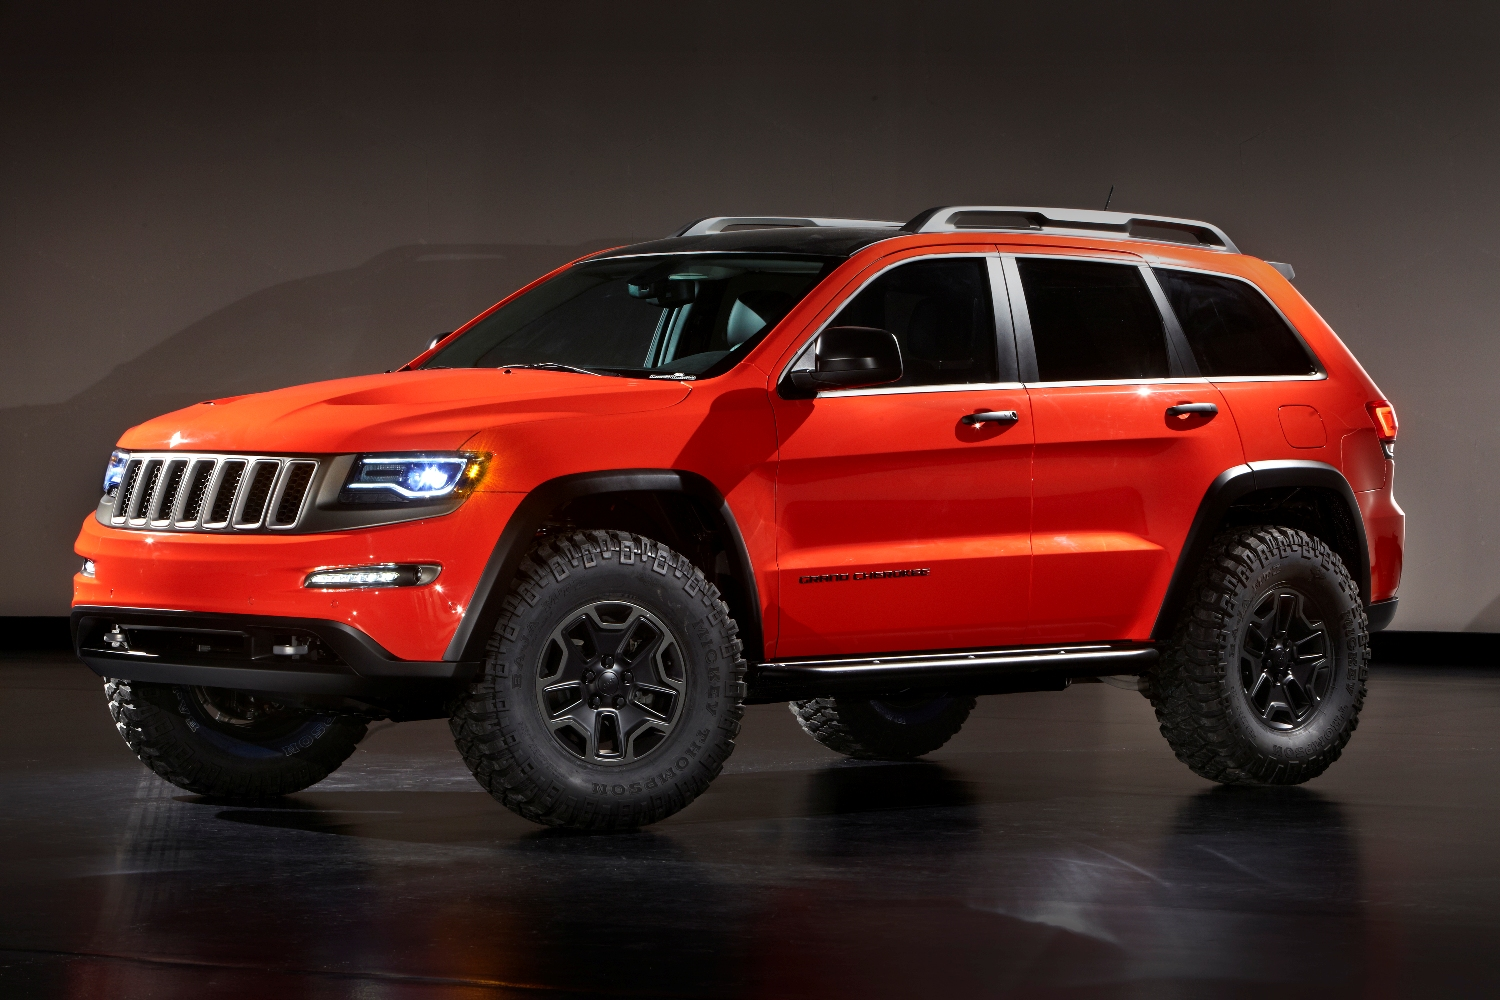 Jeep Grand Cherokee Trailhawk Concept Wallpaper Free For Phone